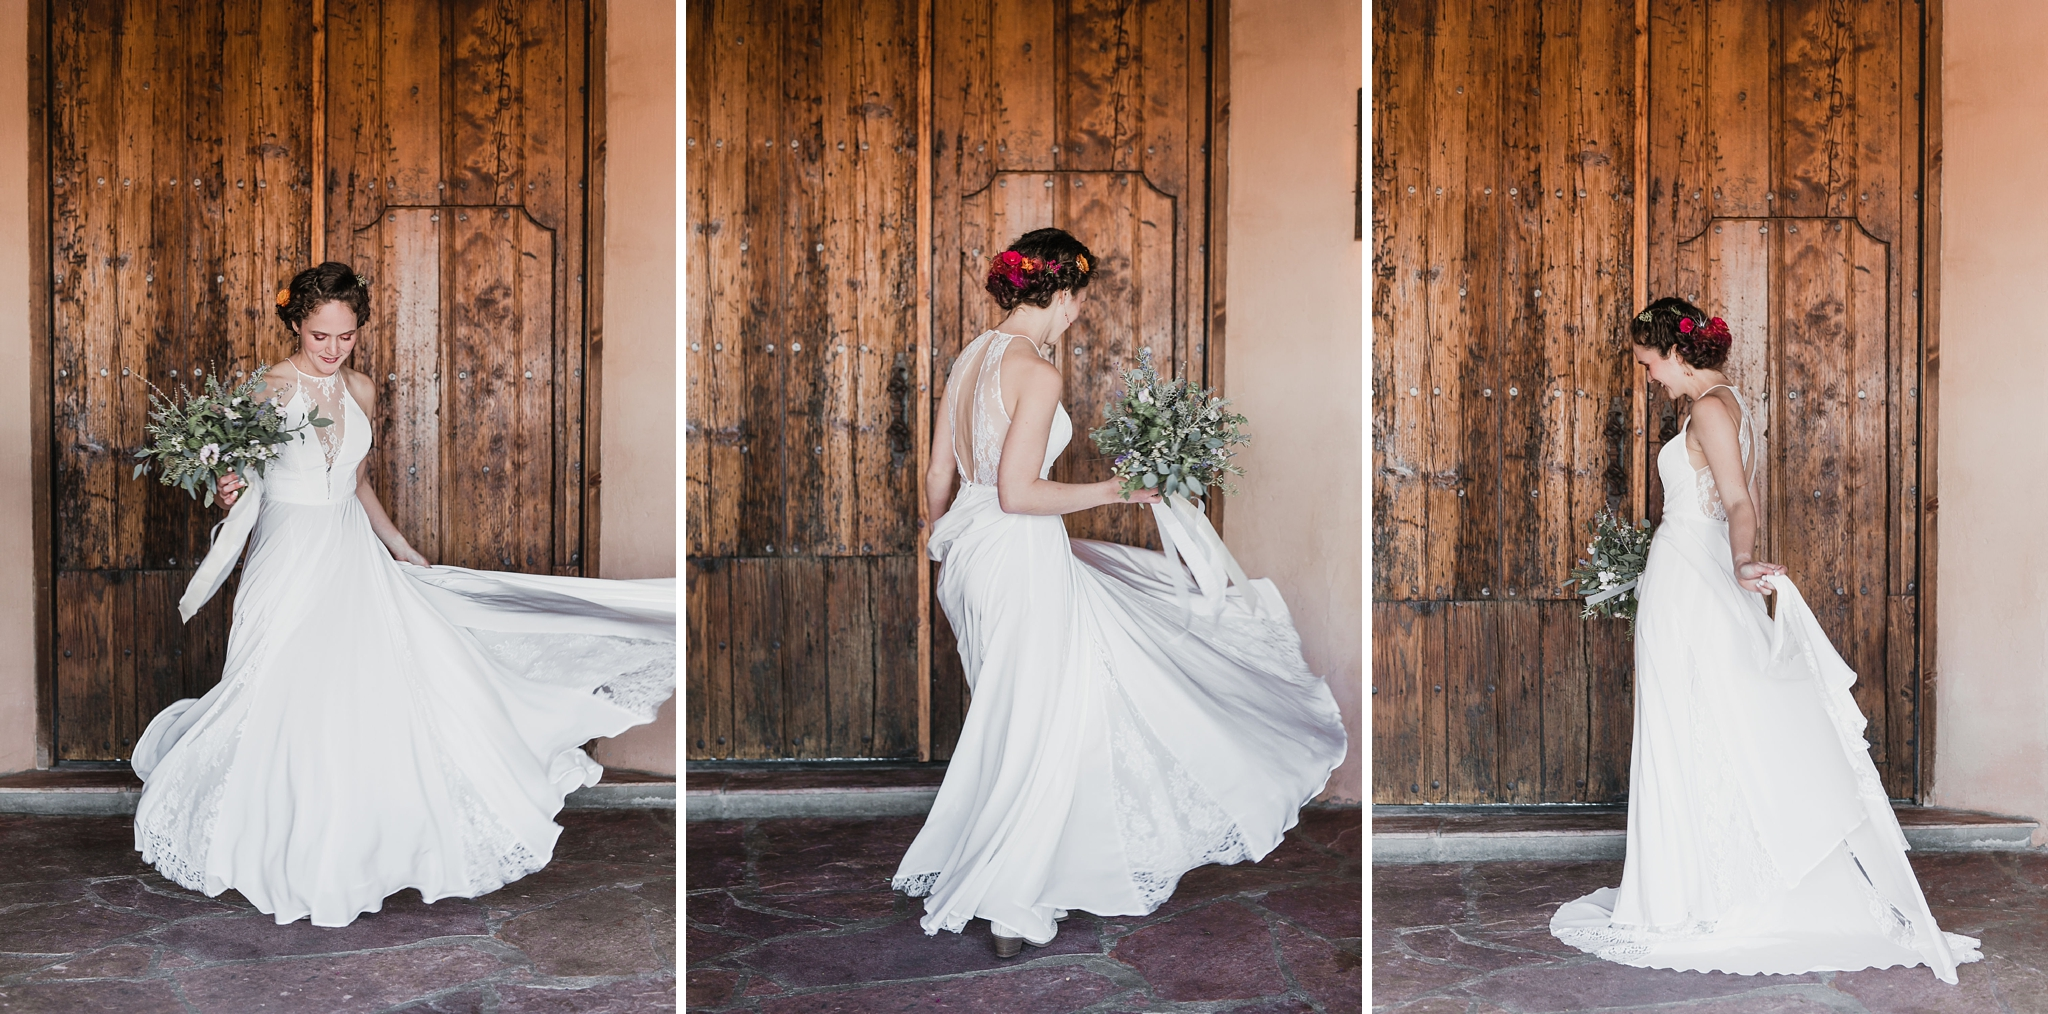 Alicia+lucia+photography+-+albuquerque+wedding+photographer+-+santa+fe+wedding+photography+-+new+mexico+wedding+photographer+-+new+mexico+wedding+-+wedding+gowns+-+bridal+gowns+-+a+line+wedding+gown_0022.jpg